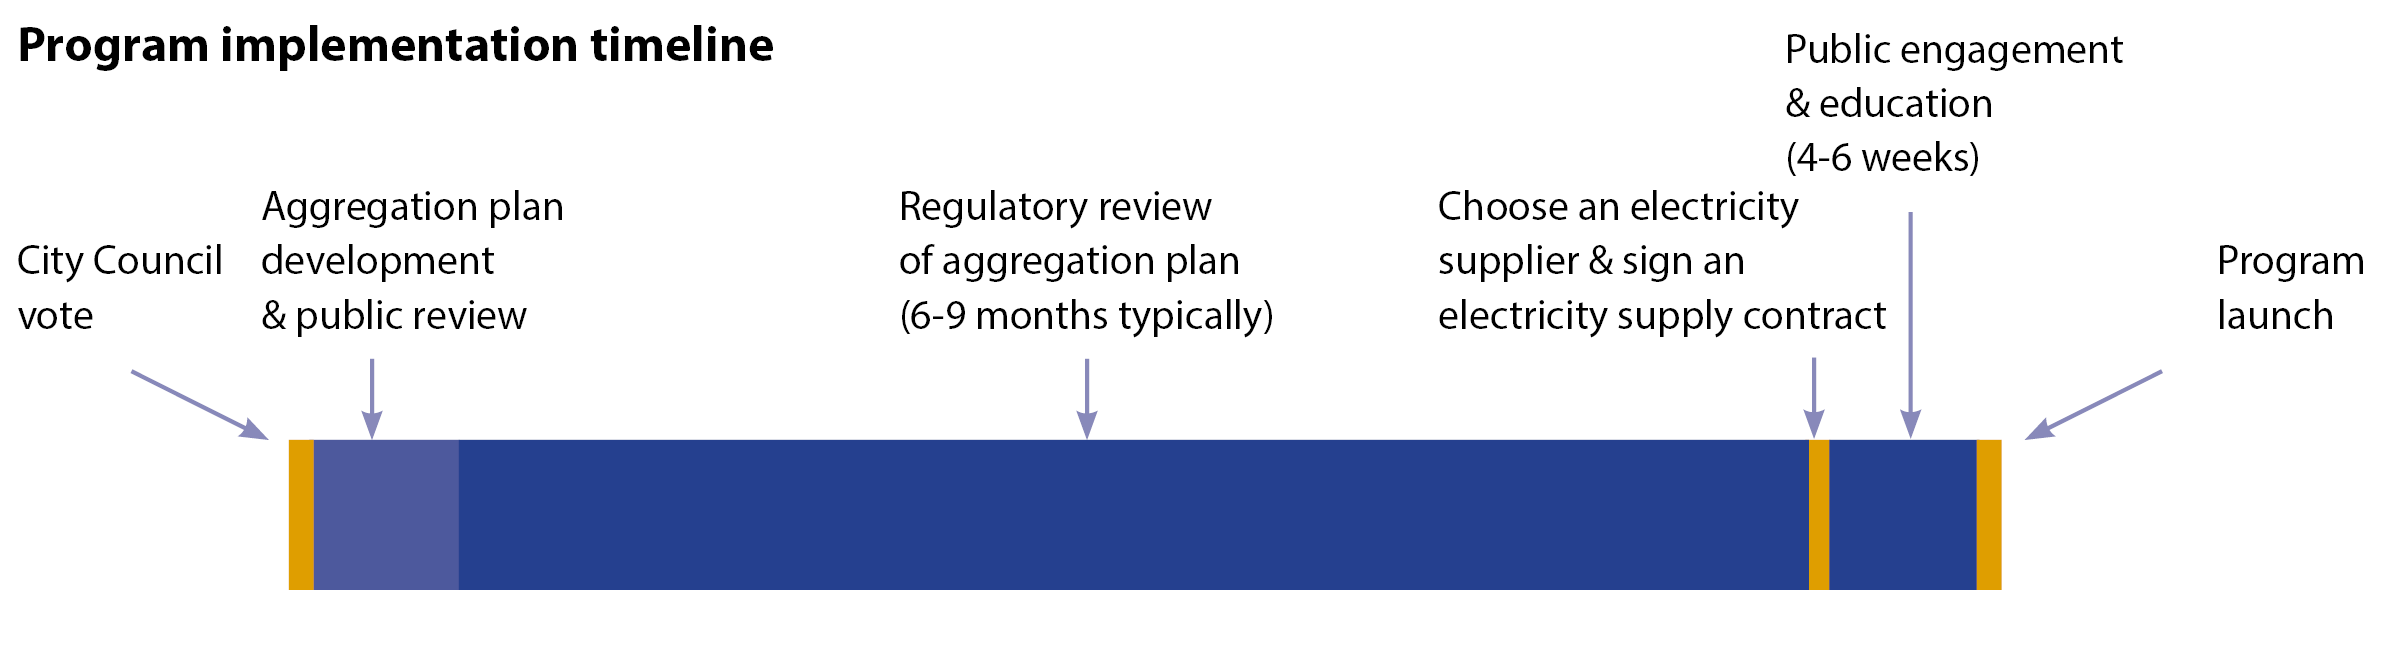 Timeline showing the steps in the program implementation process